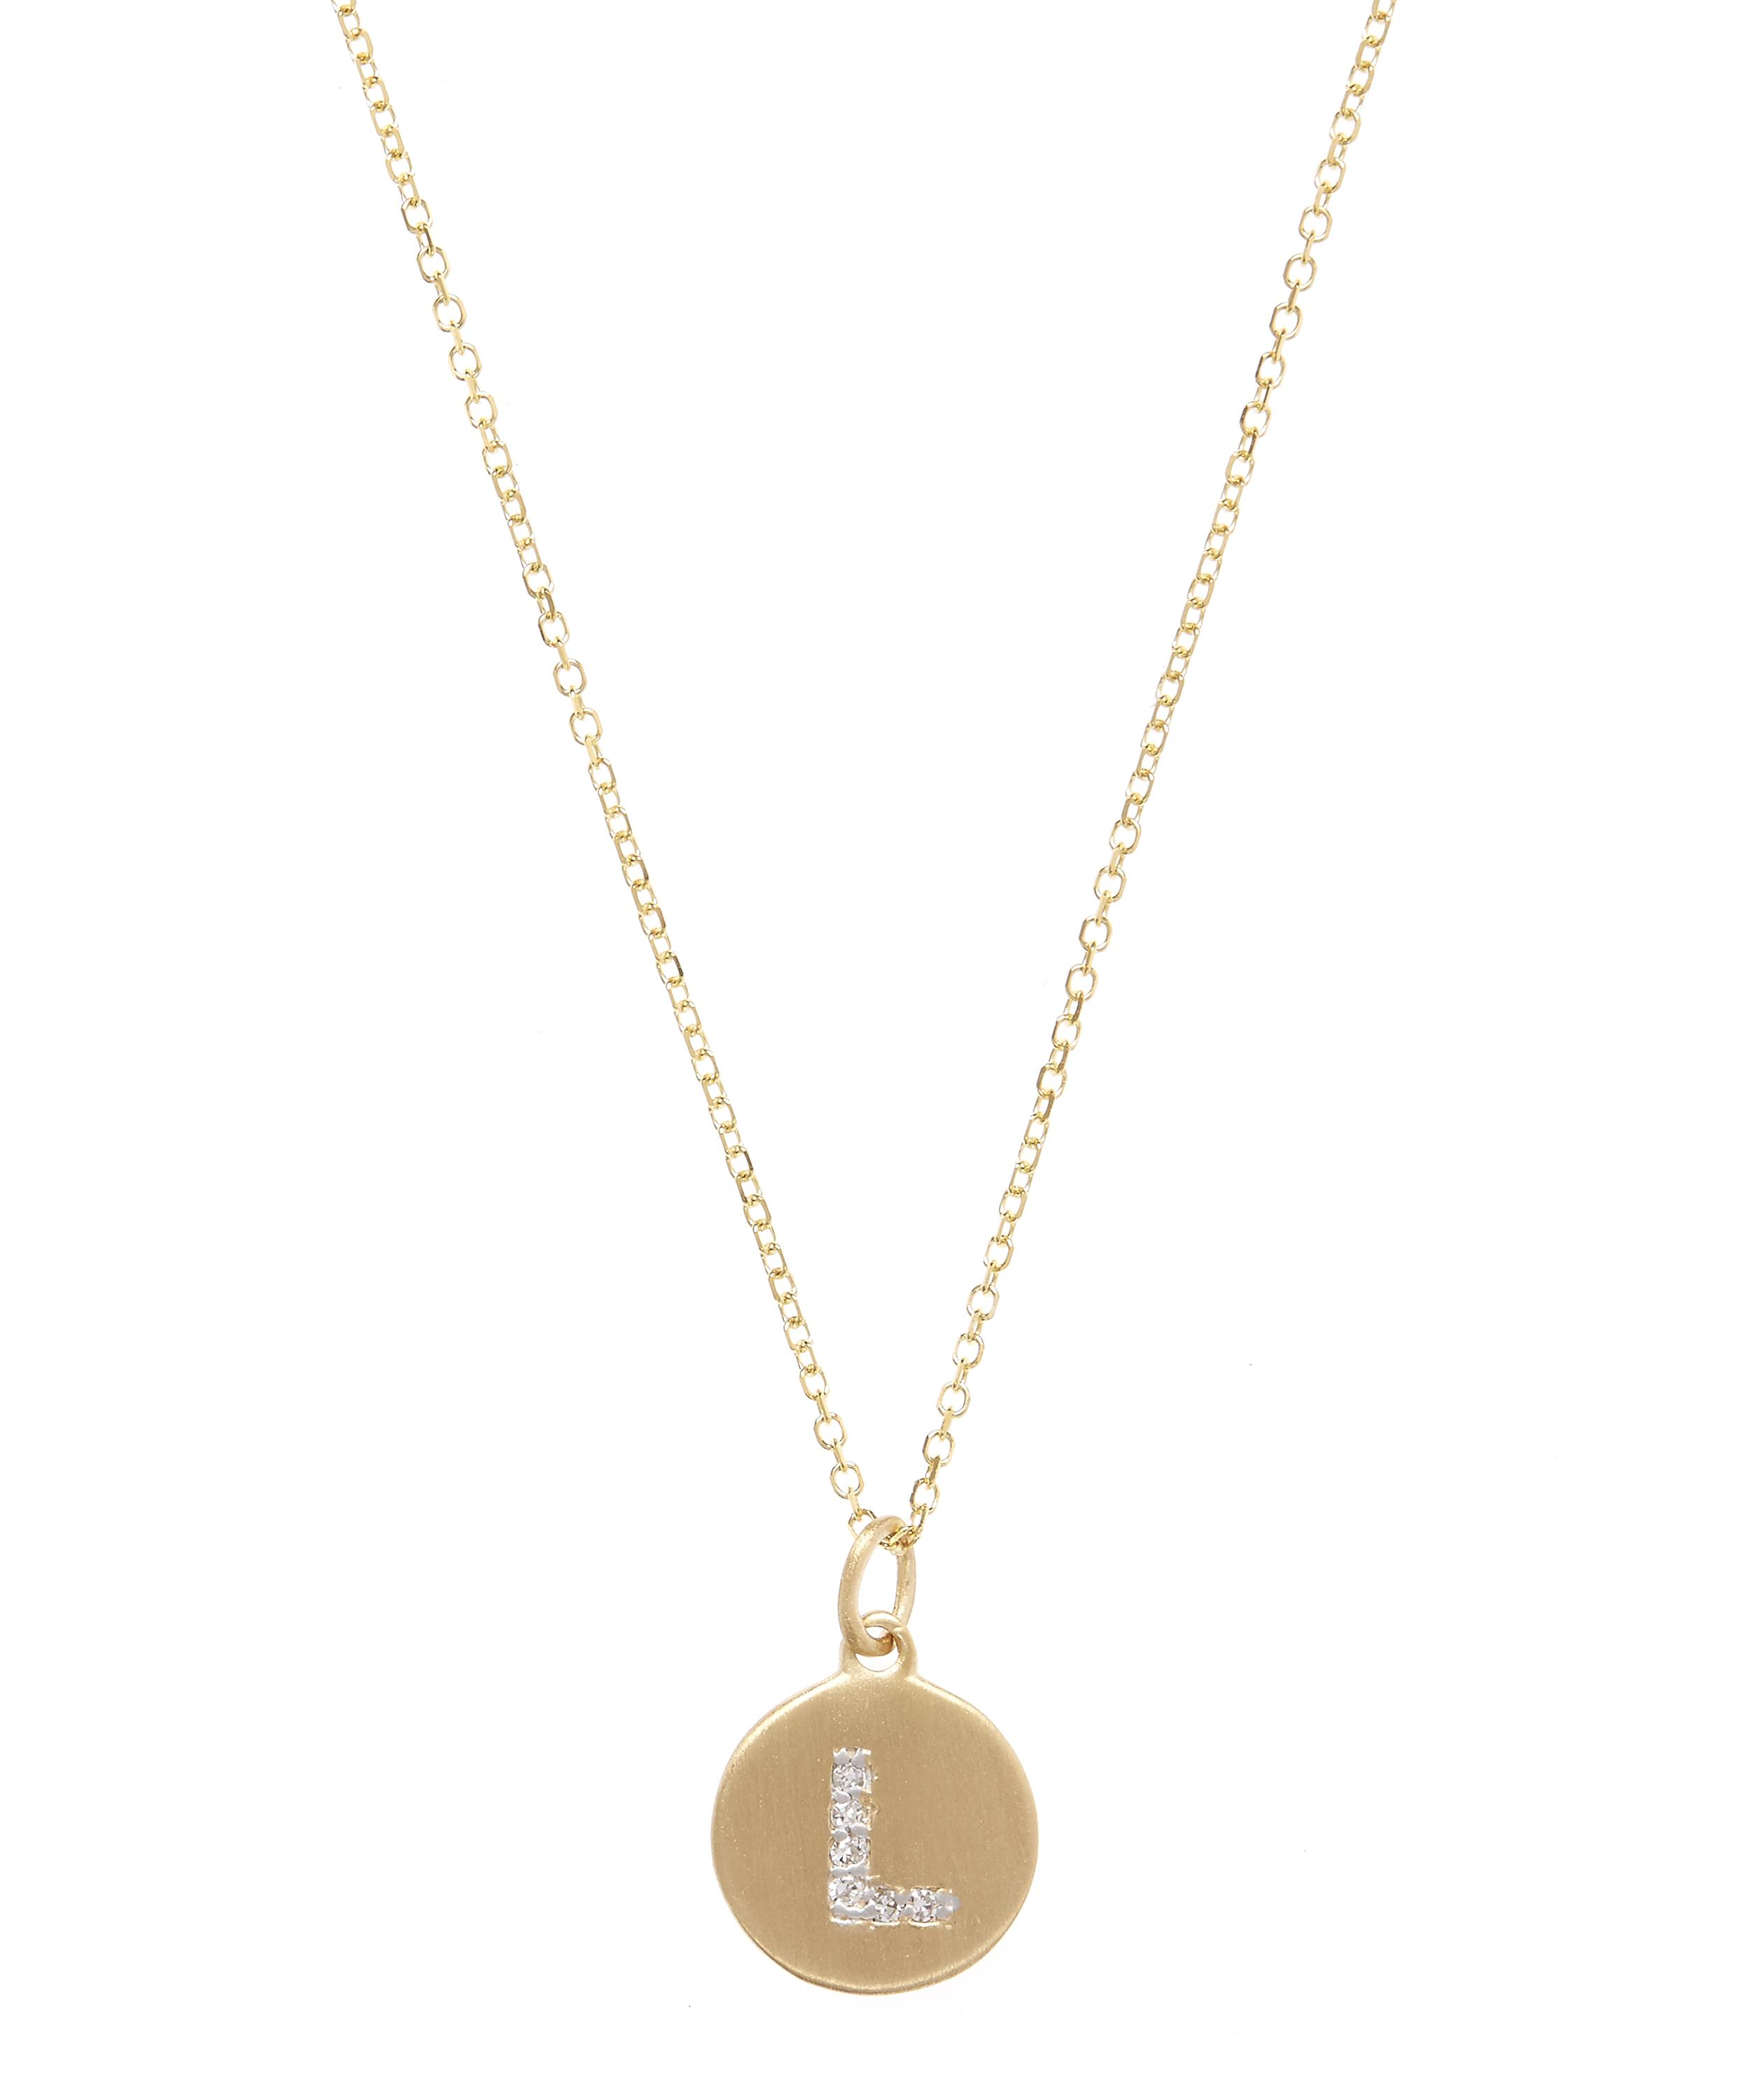 Gold and diamond letter l disc pendant necklace liberty london gold and diamond letter l disc pendant necklace aloadofball Gallery